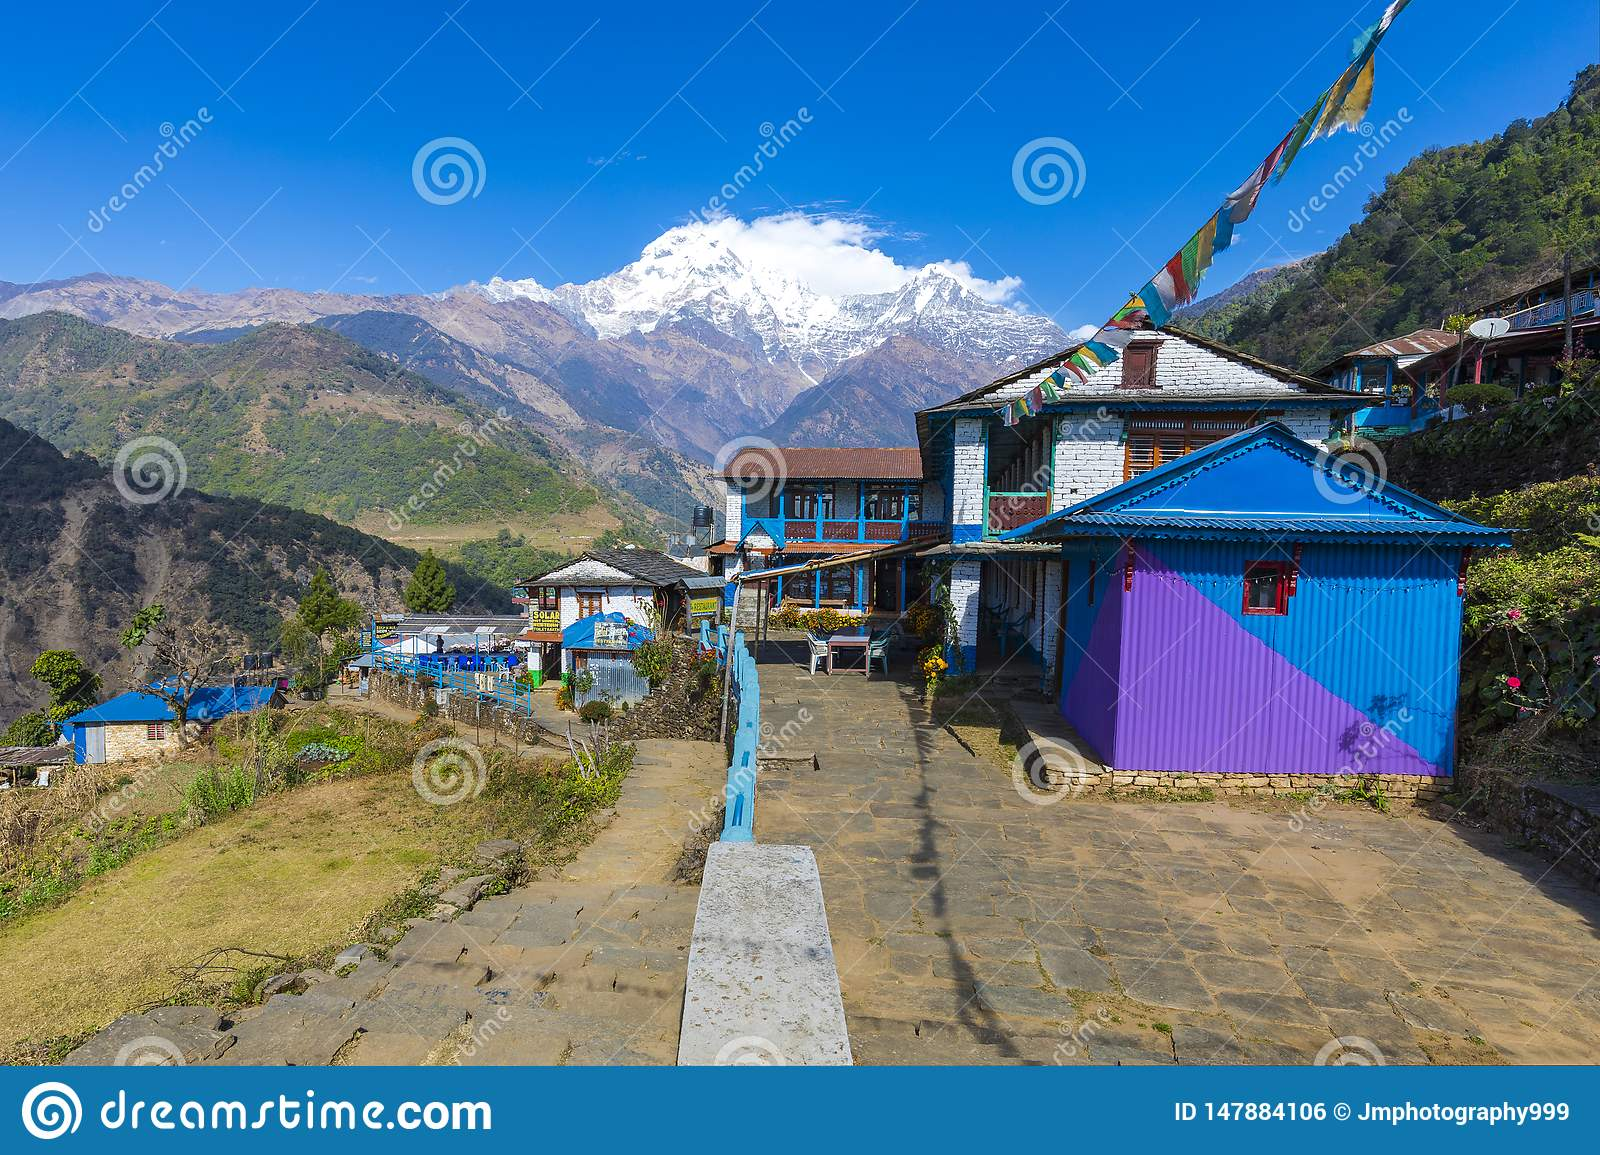 Landruk village seen on the way to Annapurna base camp